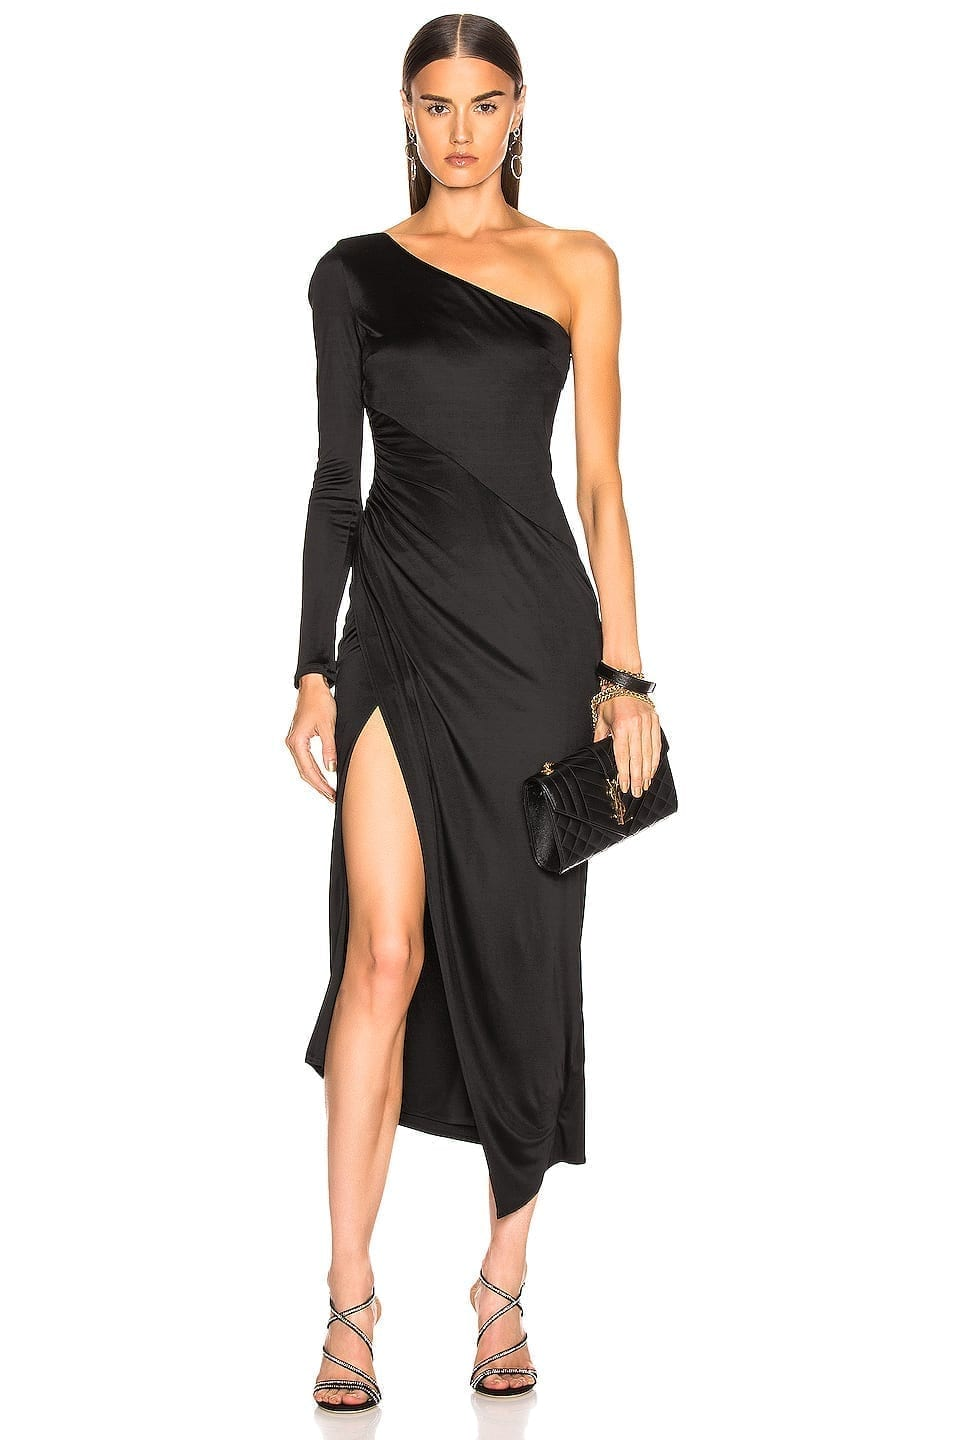 GALVAN Mamounia Black Dress